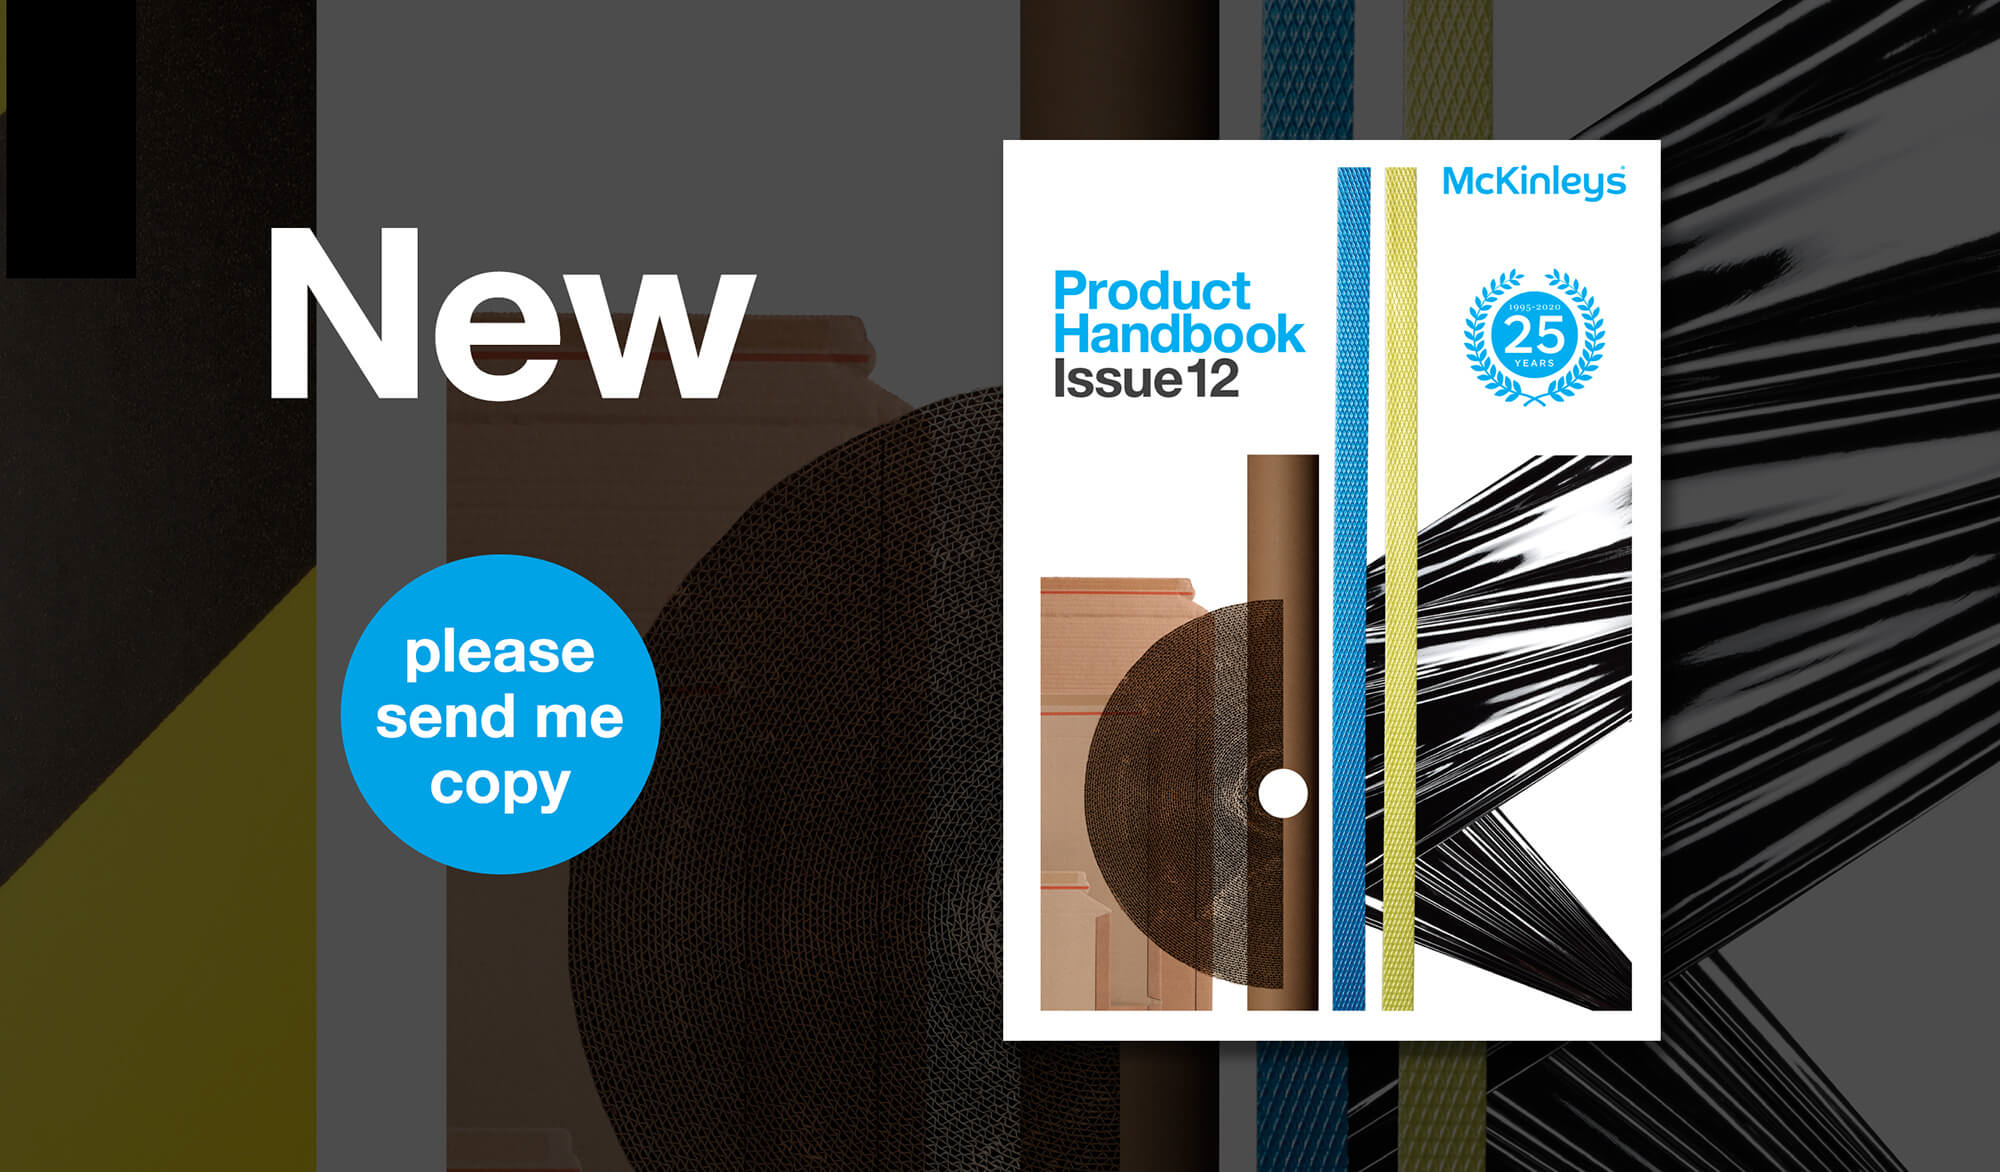 Product Handbook (issue 12) - please send me a copy